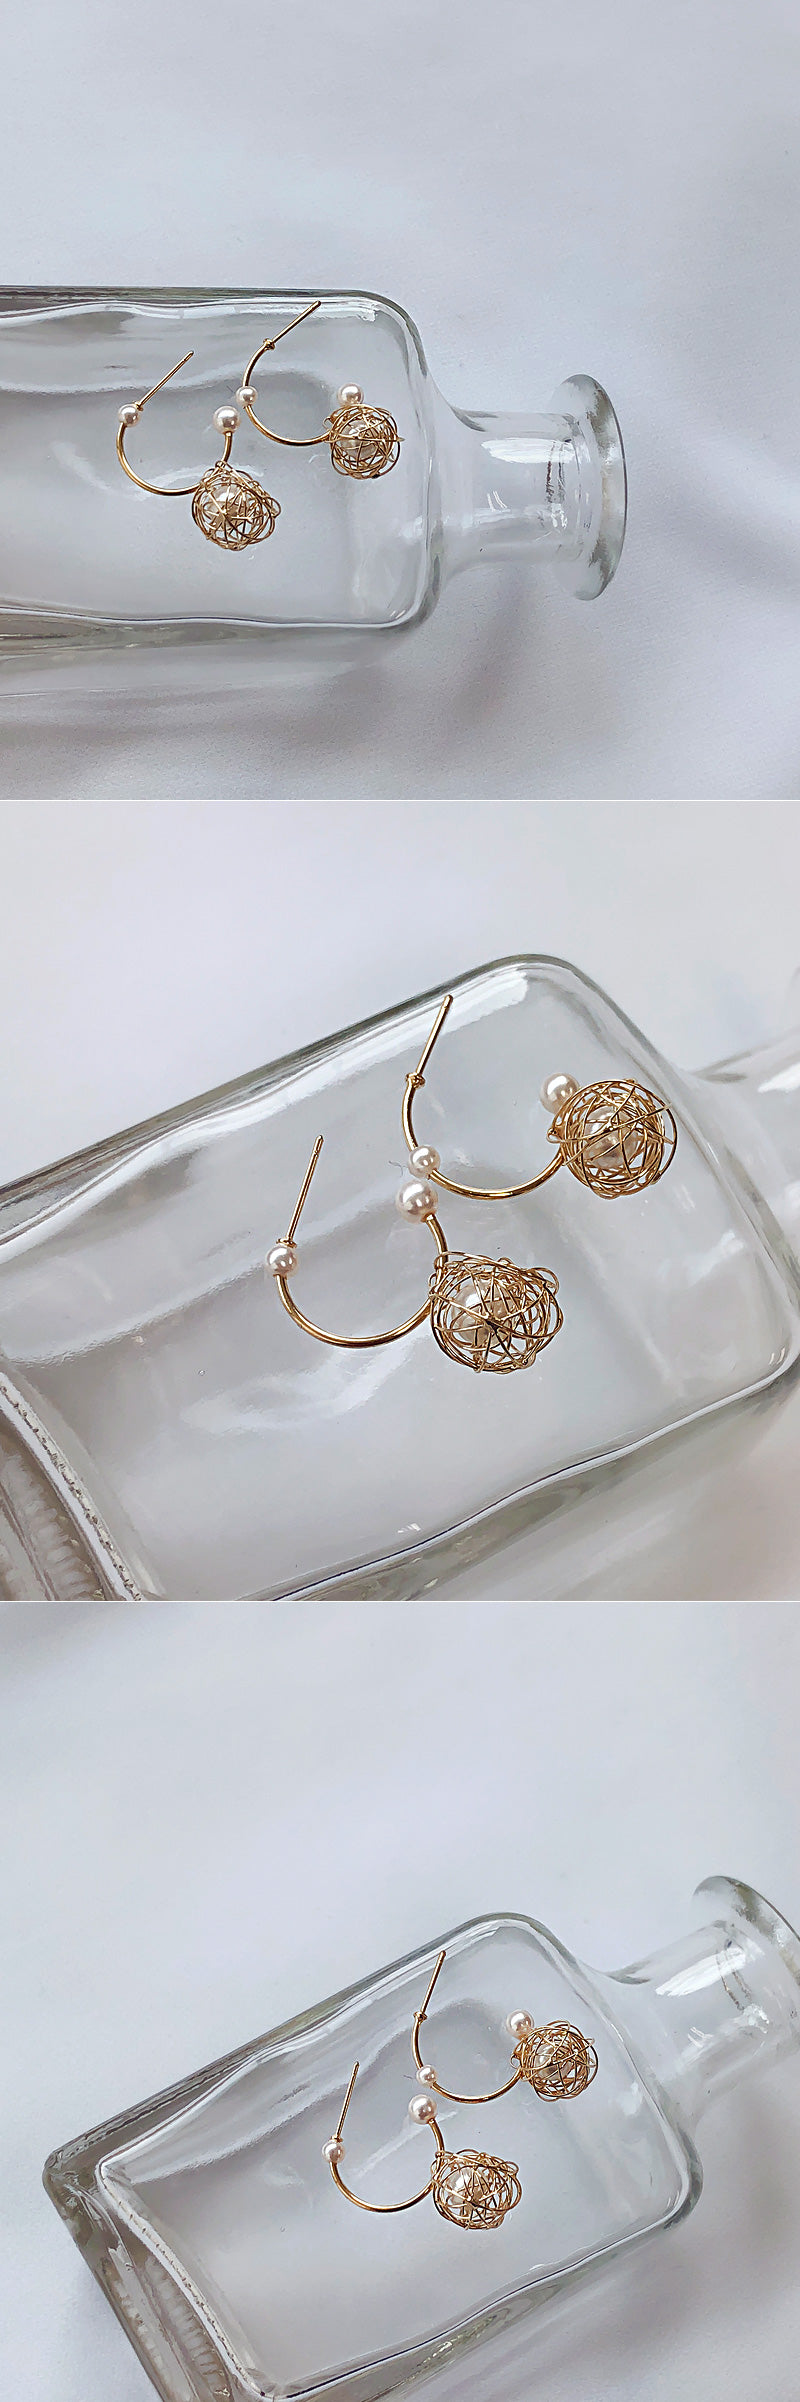 Soo & Soo Curved Ring Pearl Earrings